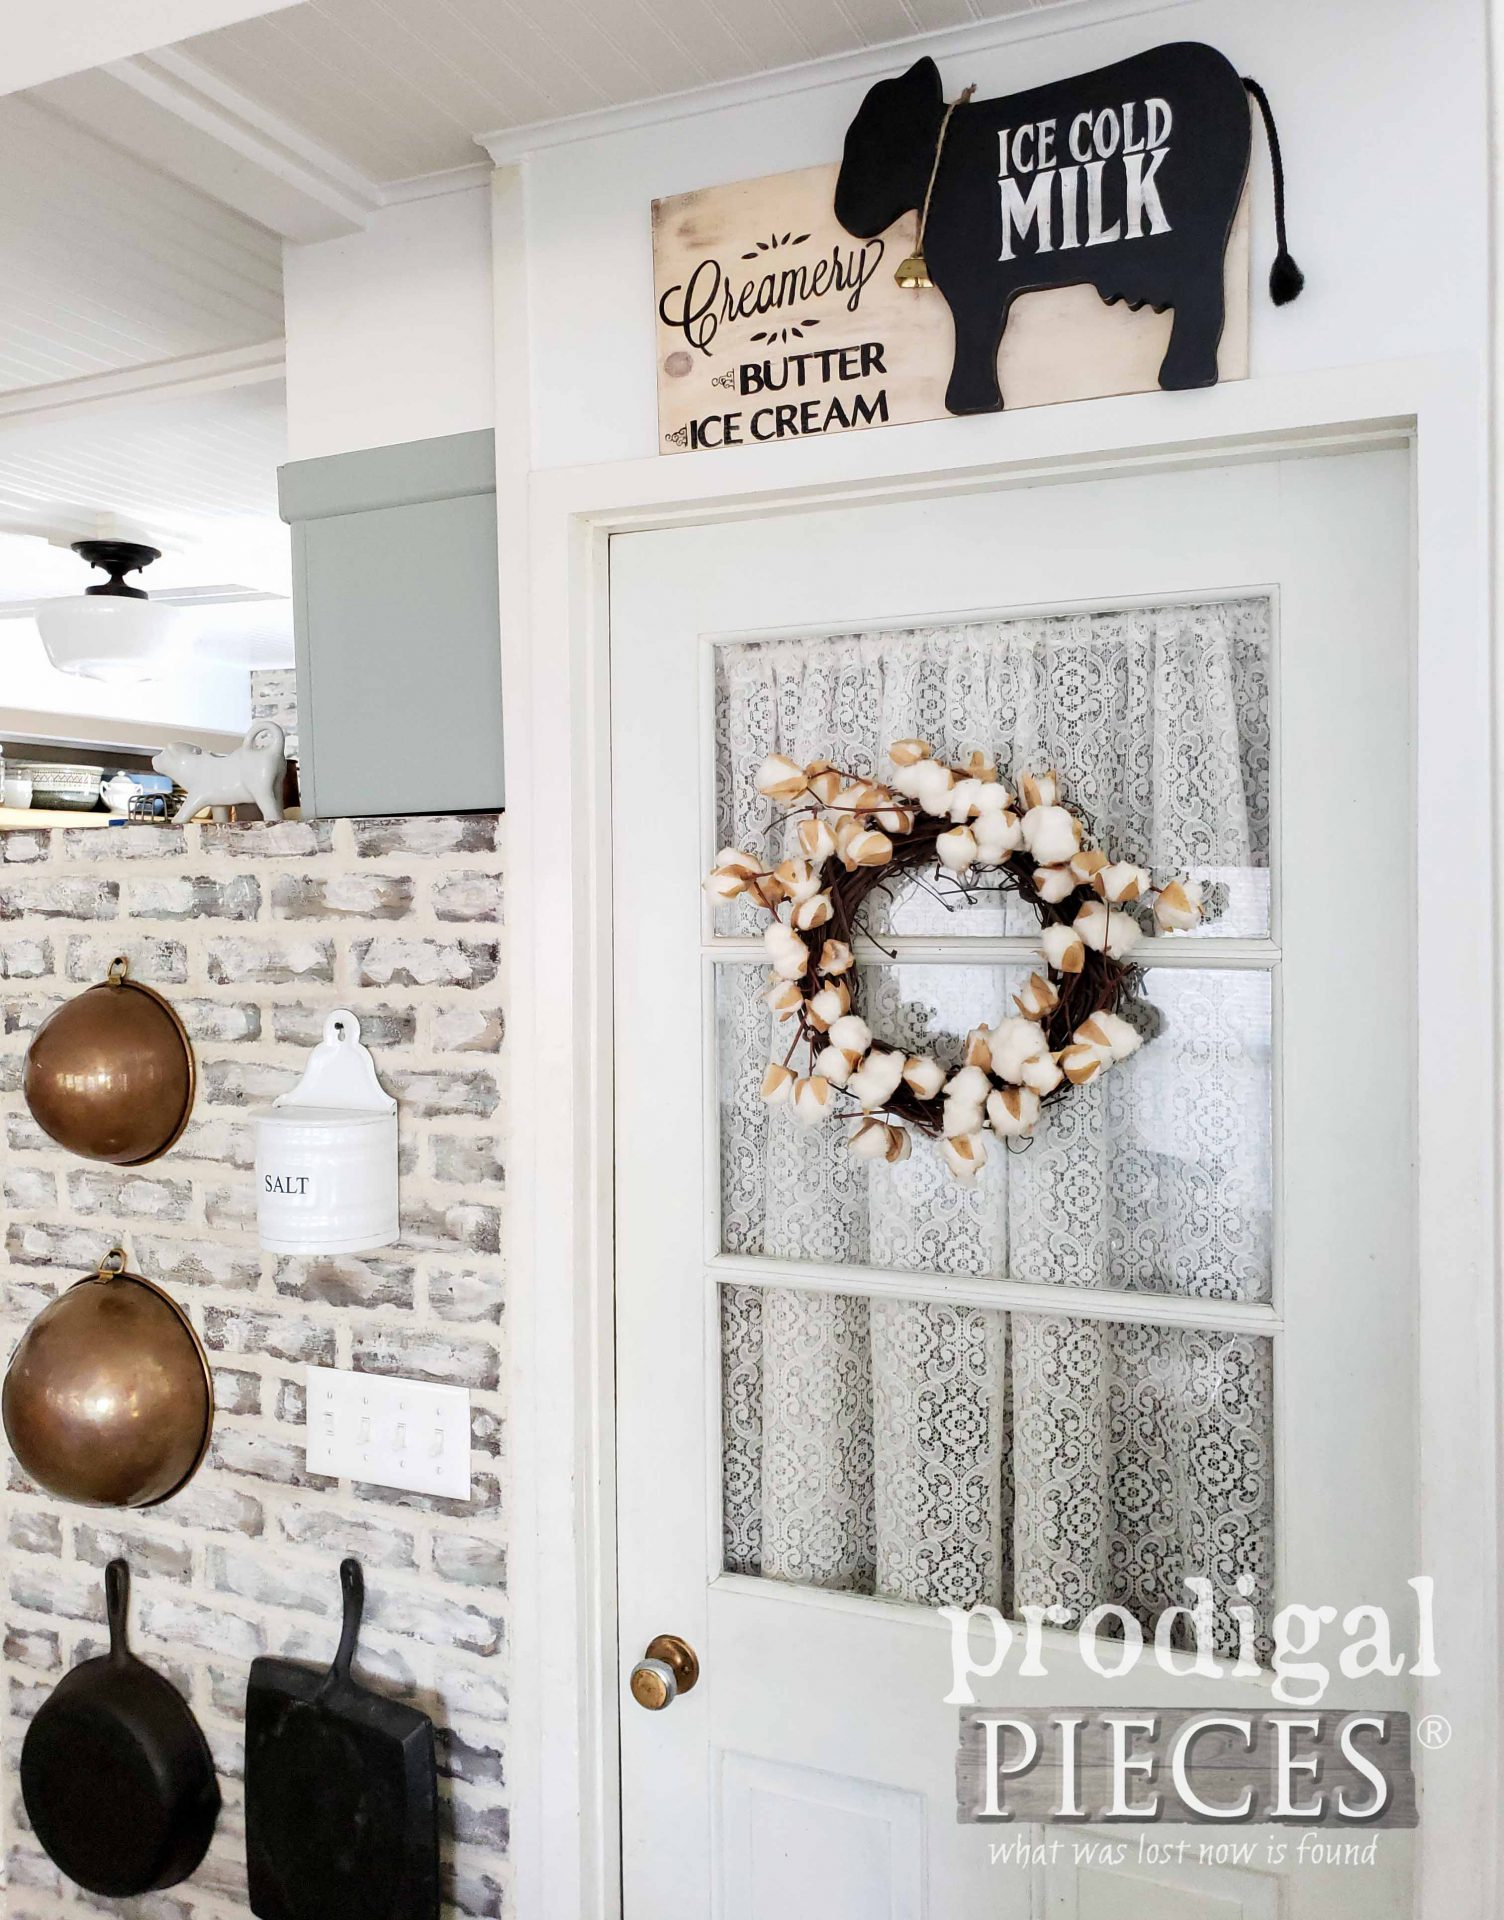 DIY Rustic Farmhouse Decor Created from Reclaimed Parts by Larissa of Prodigal Pieces | prodigalpieces.com #prodigalpieces #home #farmhouse #kitchen #homedecor